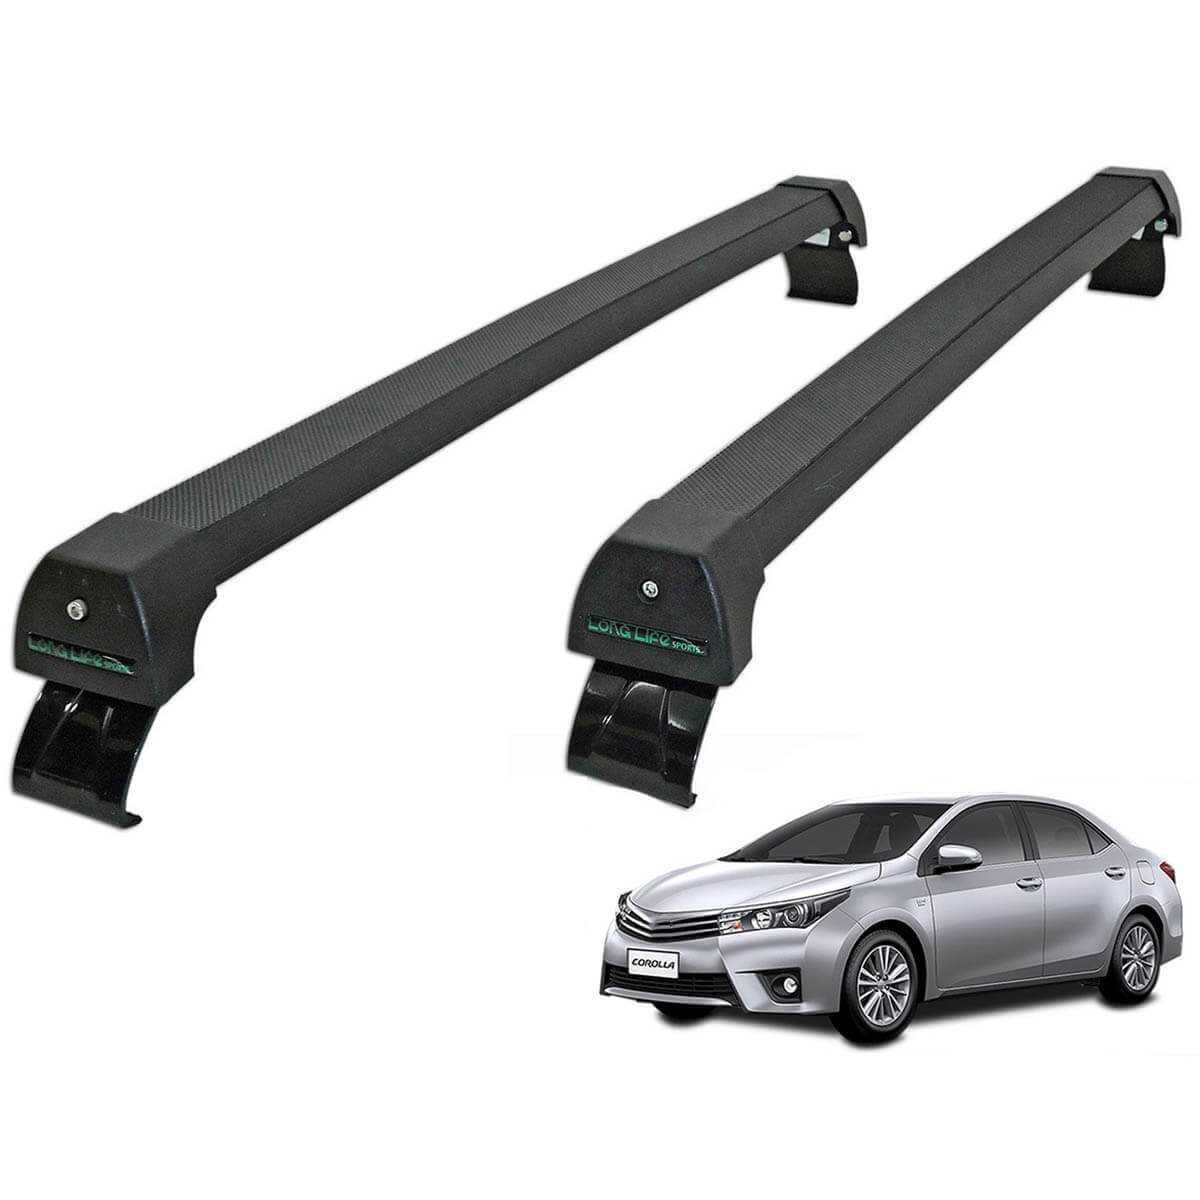 Rack de teto Corolla 2015 a 2019 Long Life Sports preto